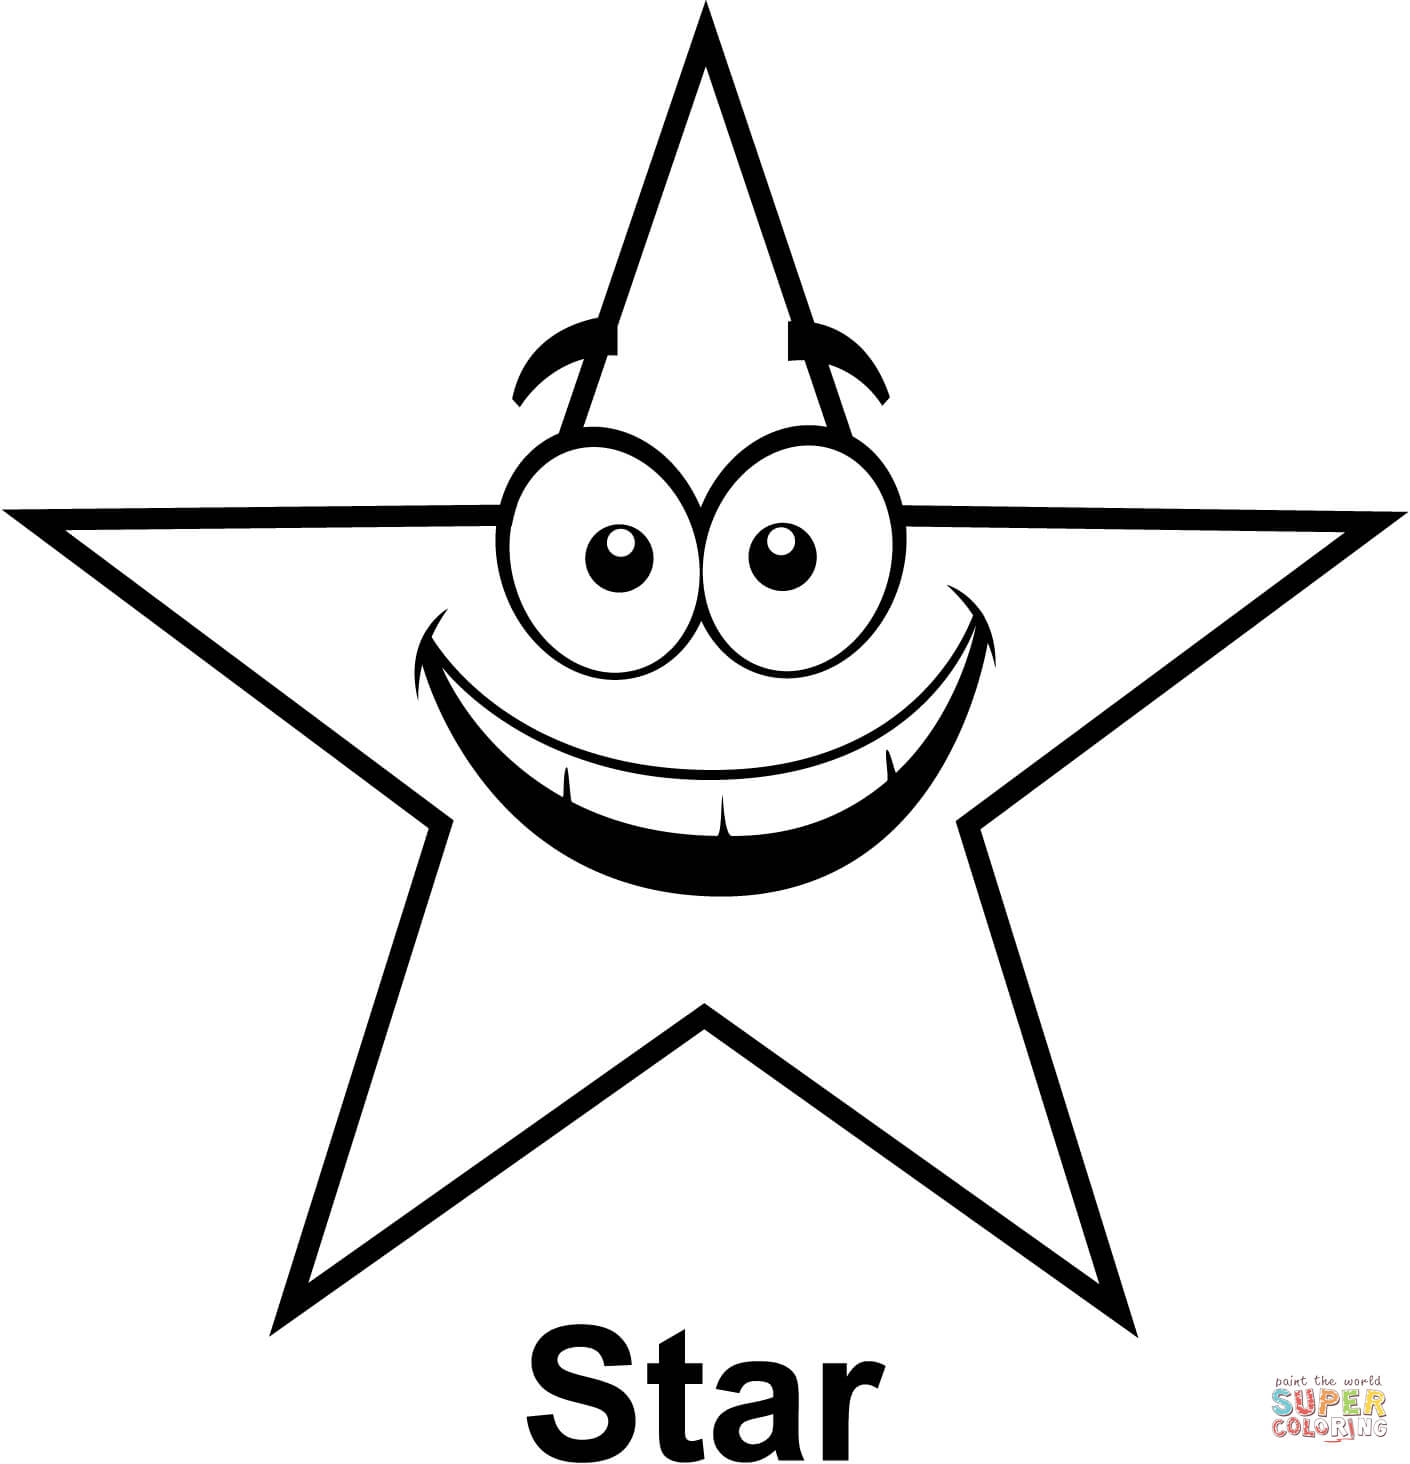 Star With Cartoon Face Coloring Page Free Printable Coloring Pages